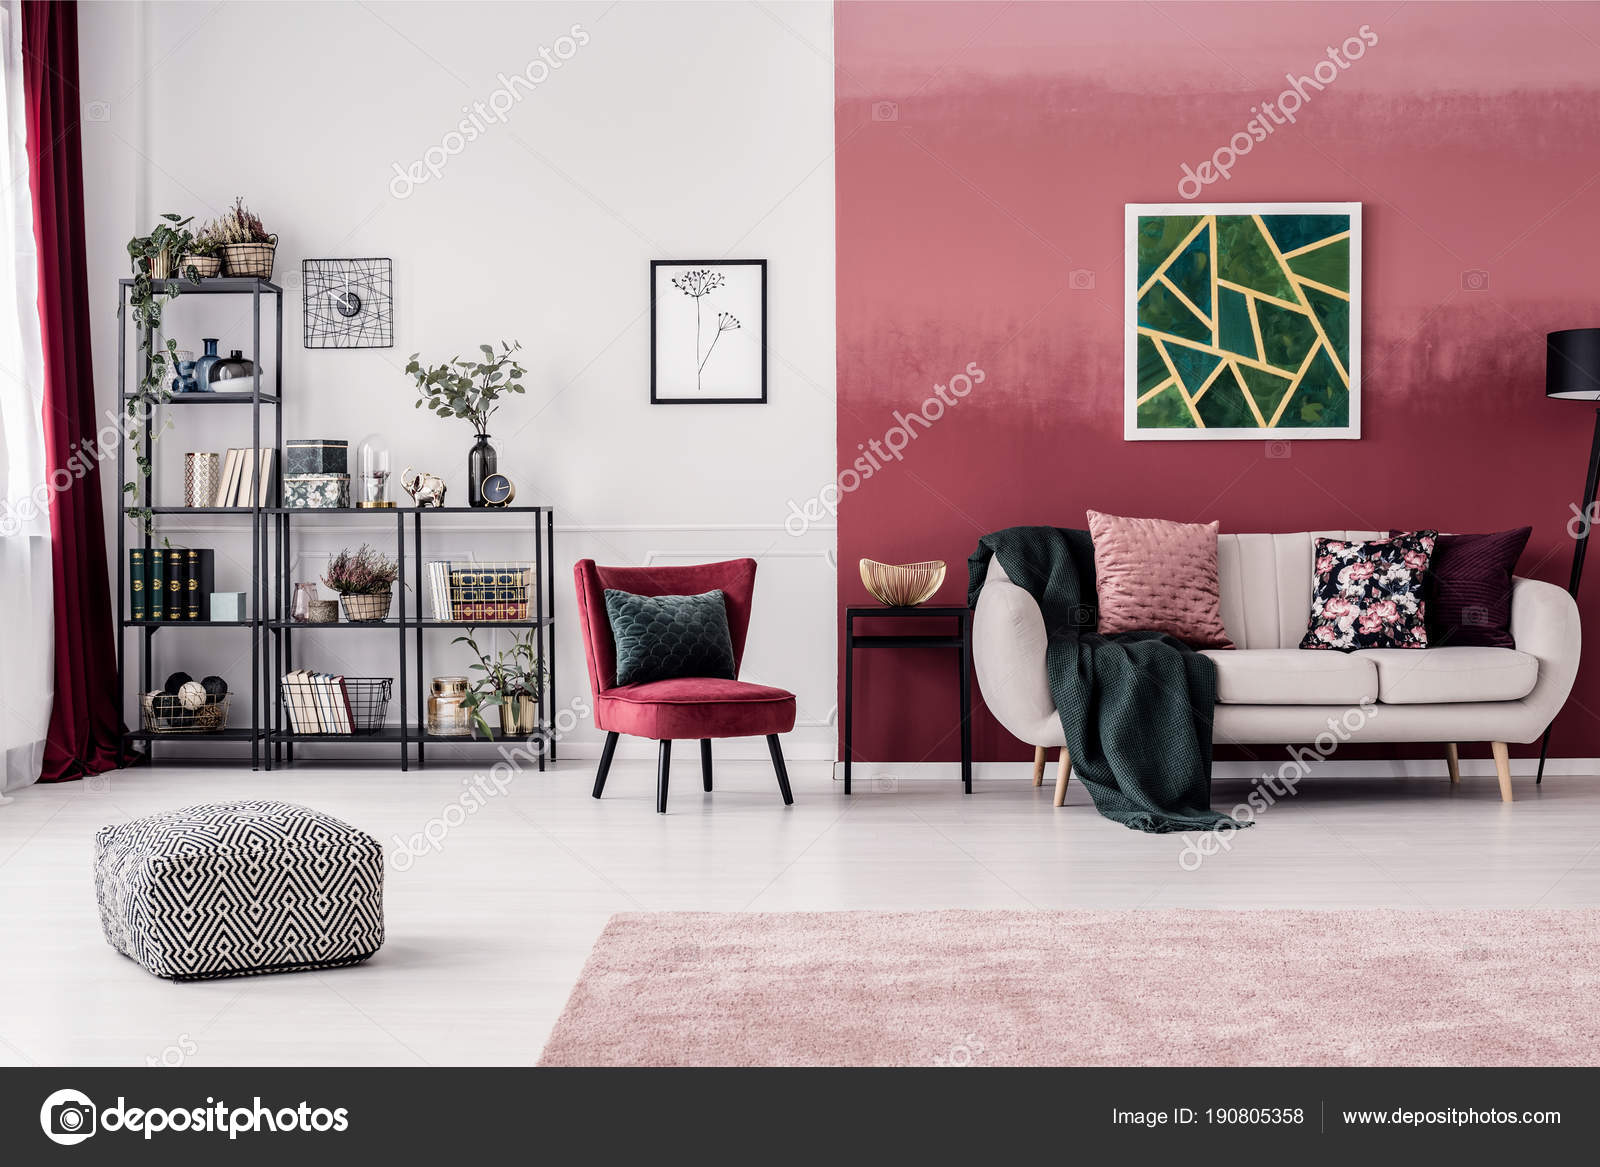 https://st3.depositphotos.com/2249091/19080/i/1600/depositphotos_190805358-stock-photo-living-room-with-red-wall.jpg